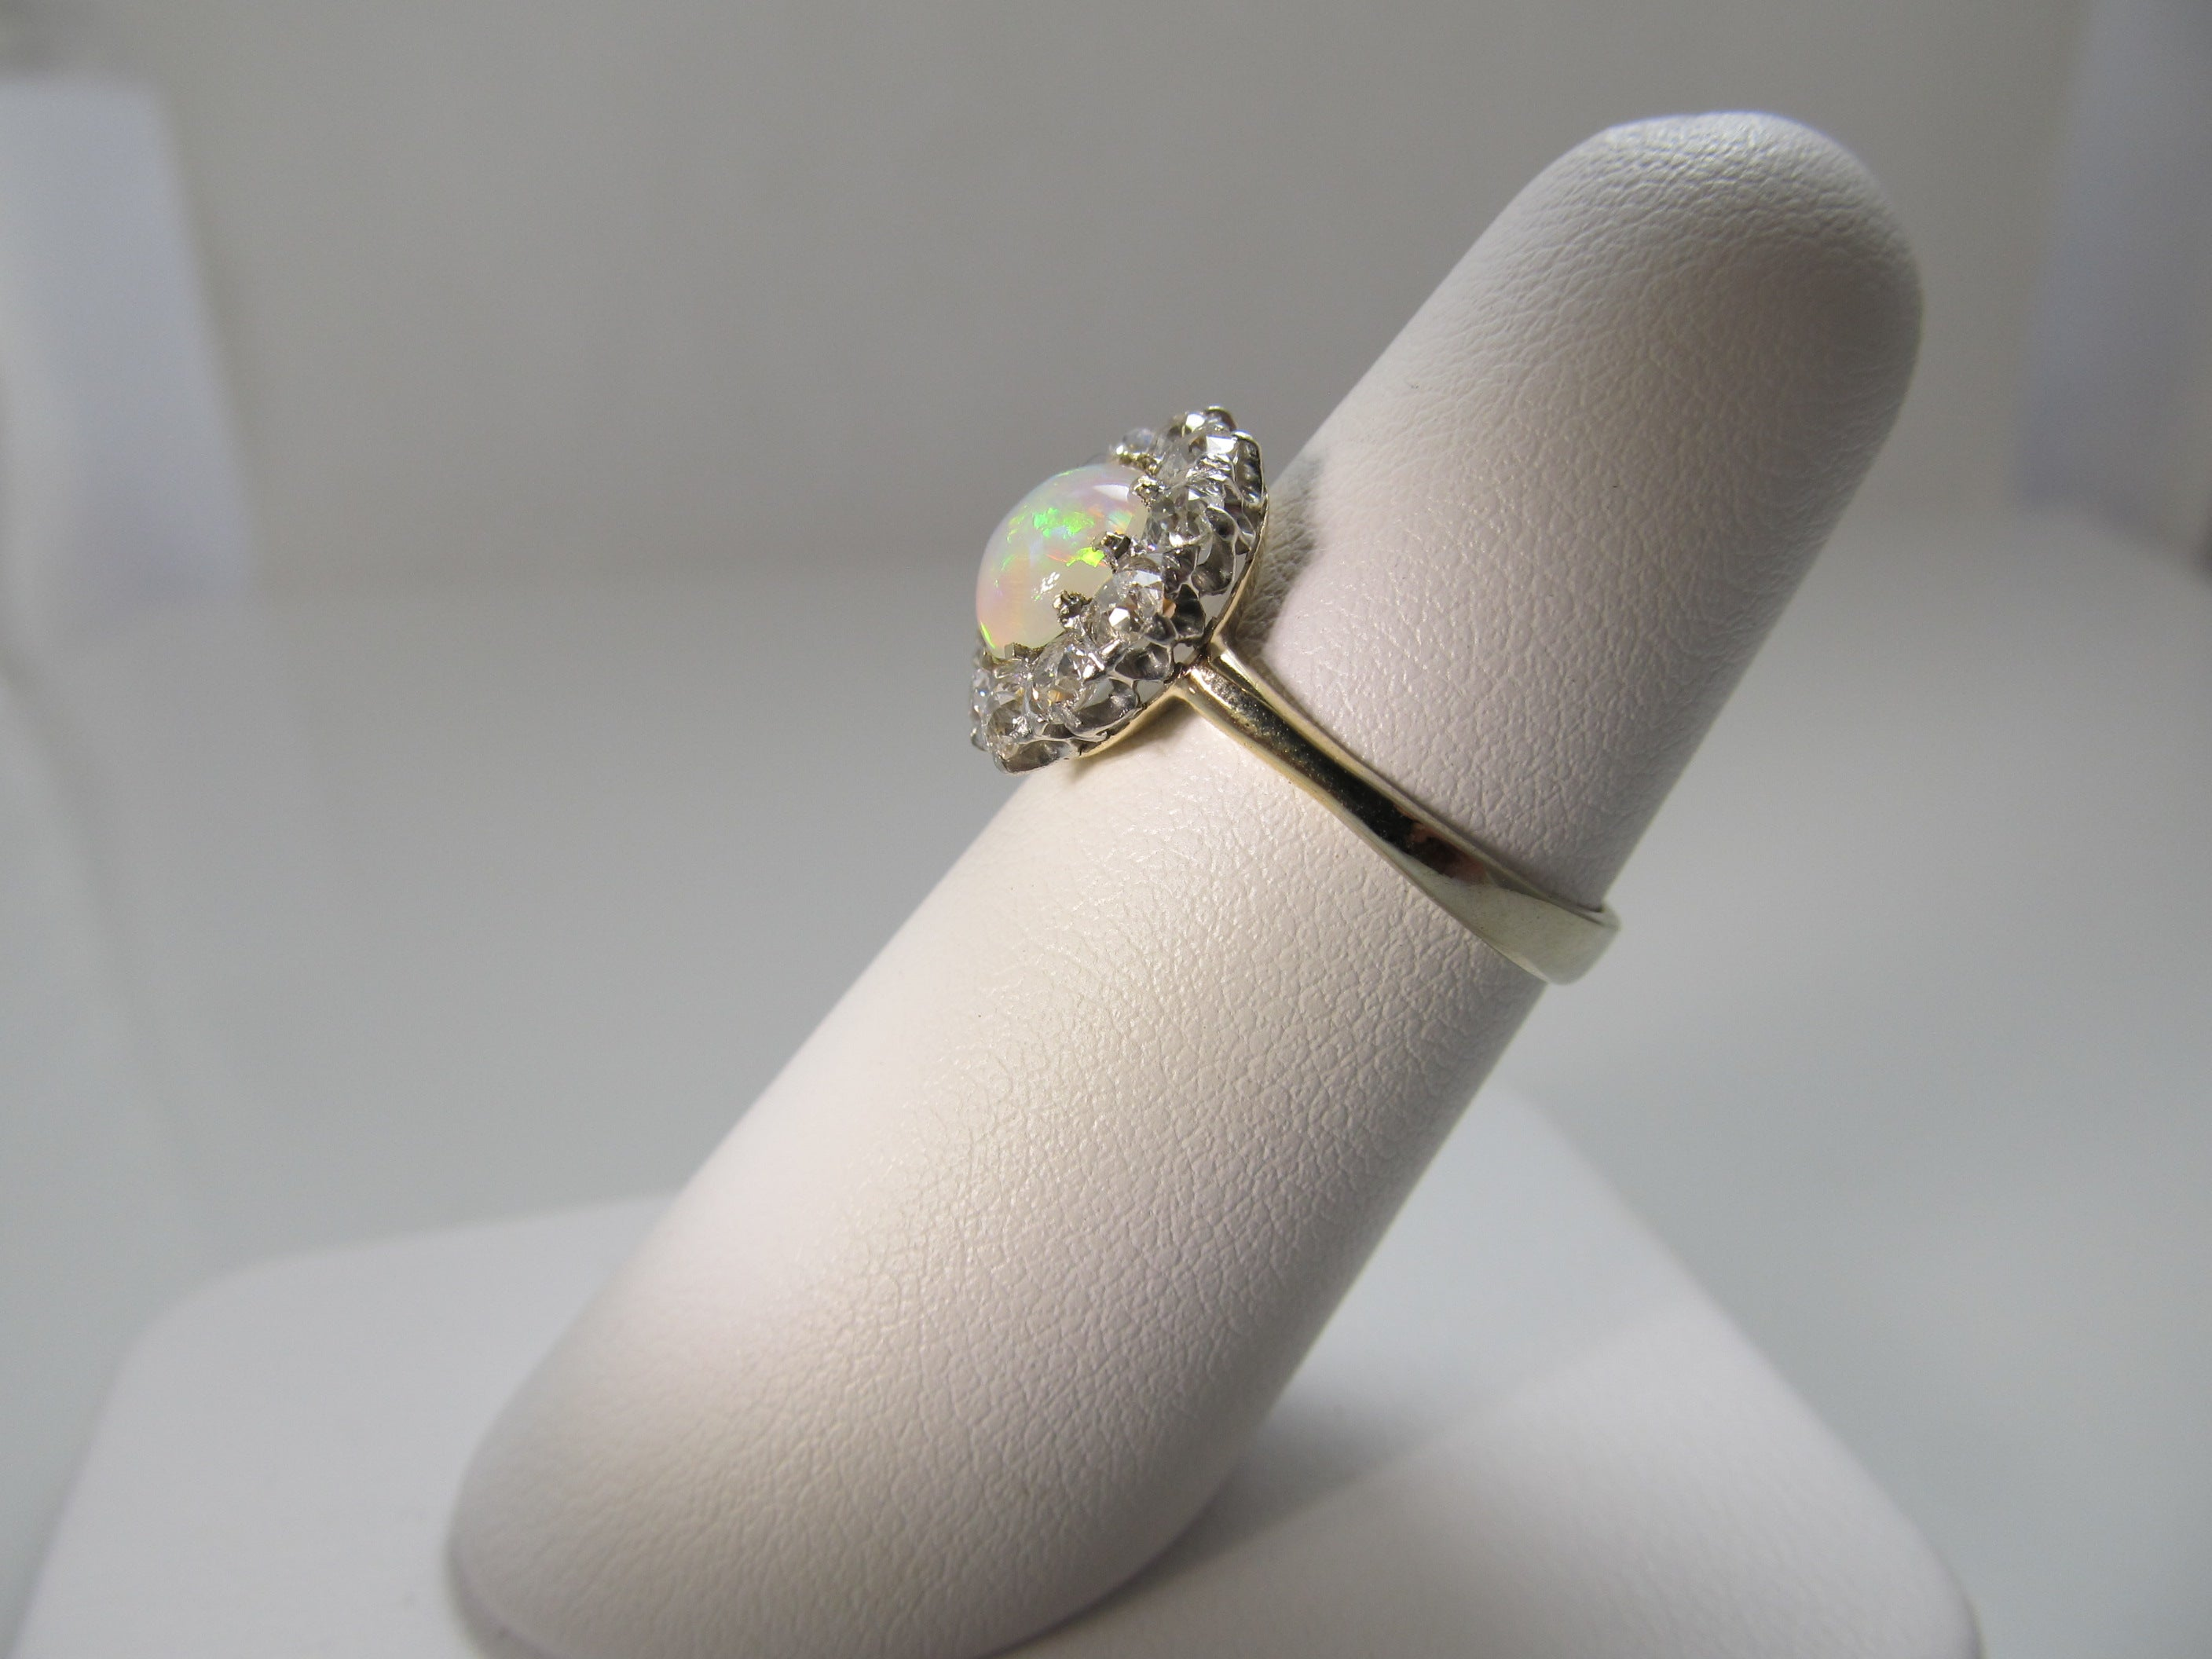 Antique platinum and 14k ring with opal and diamonds